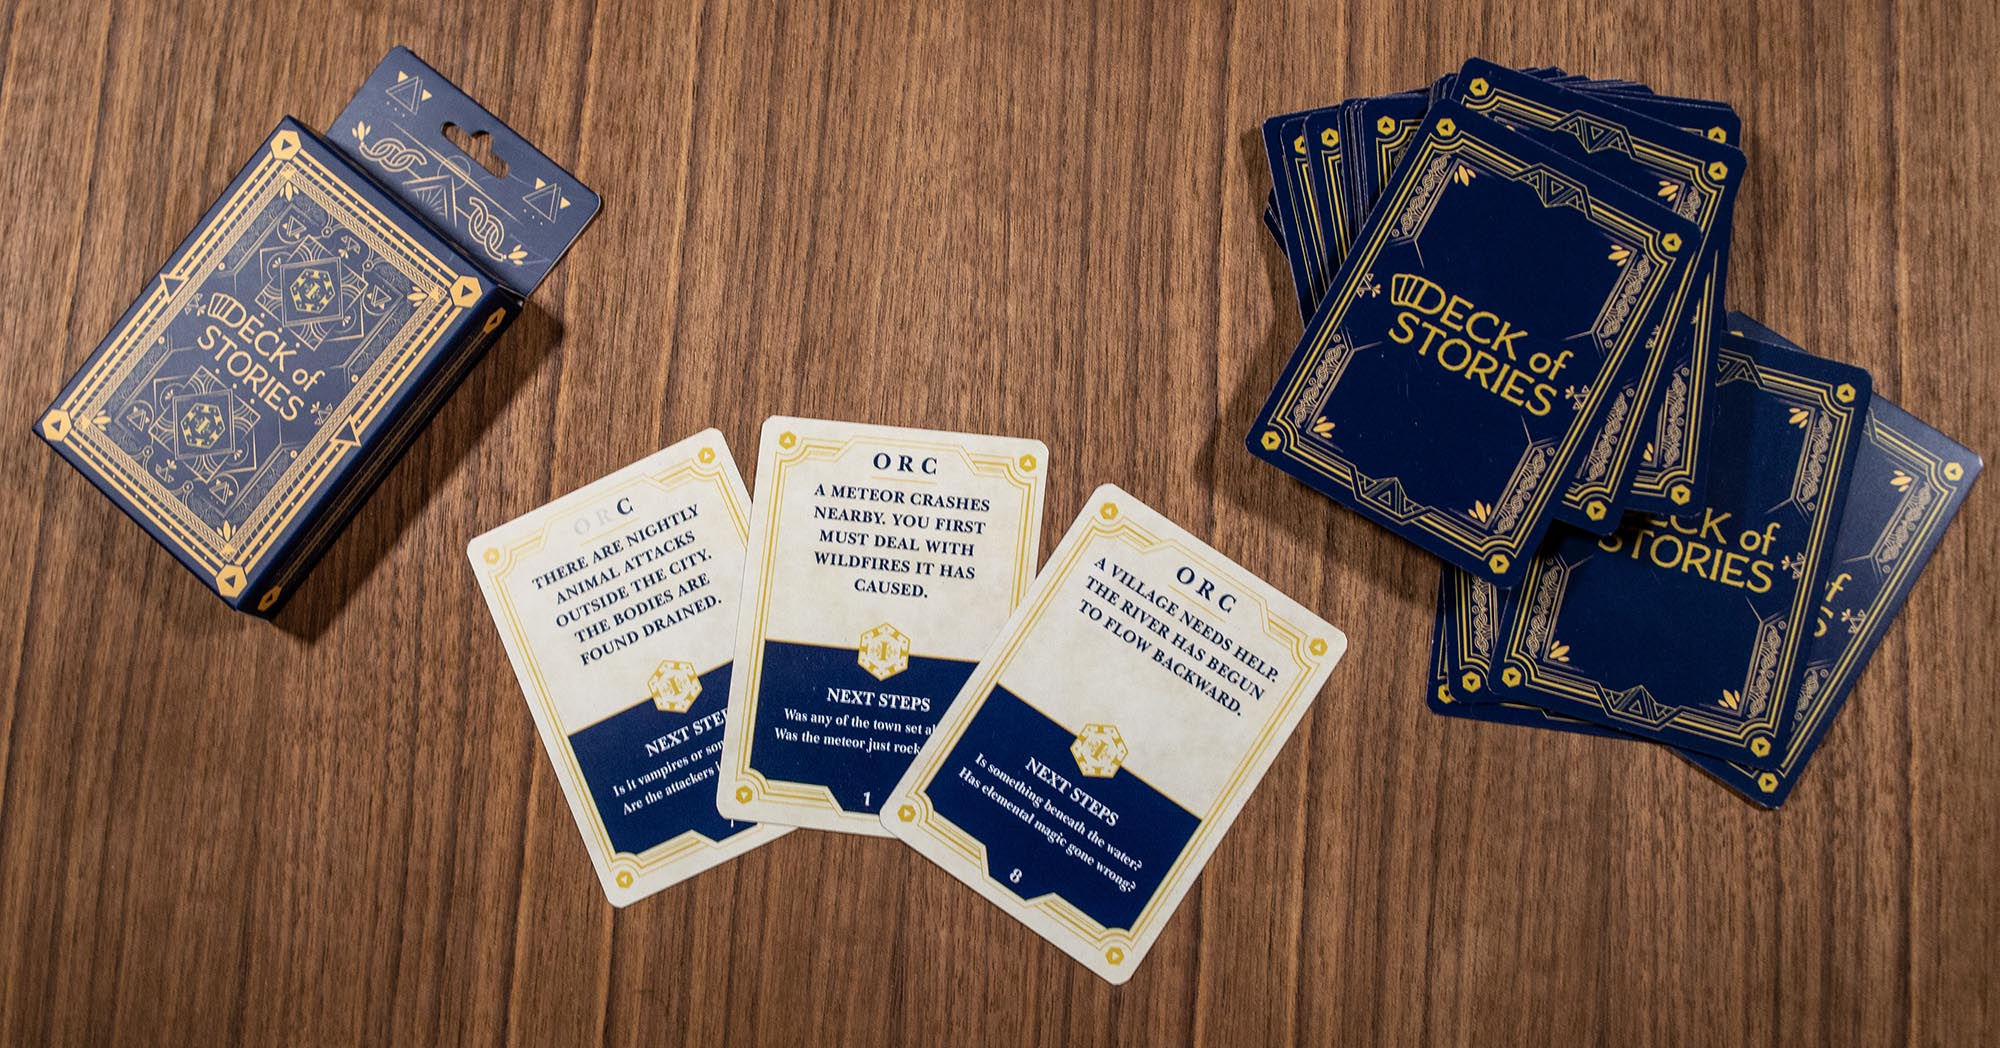 The Deck of Stories and NPC Cards Kickstarter Announced by 1985 Games